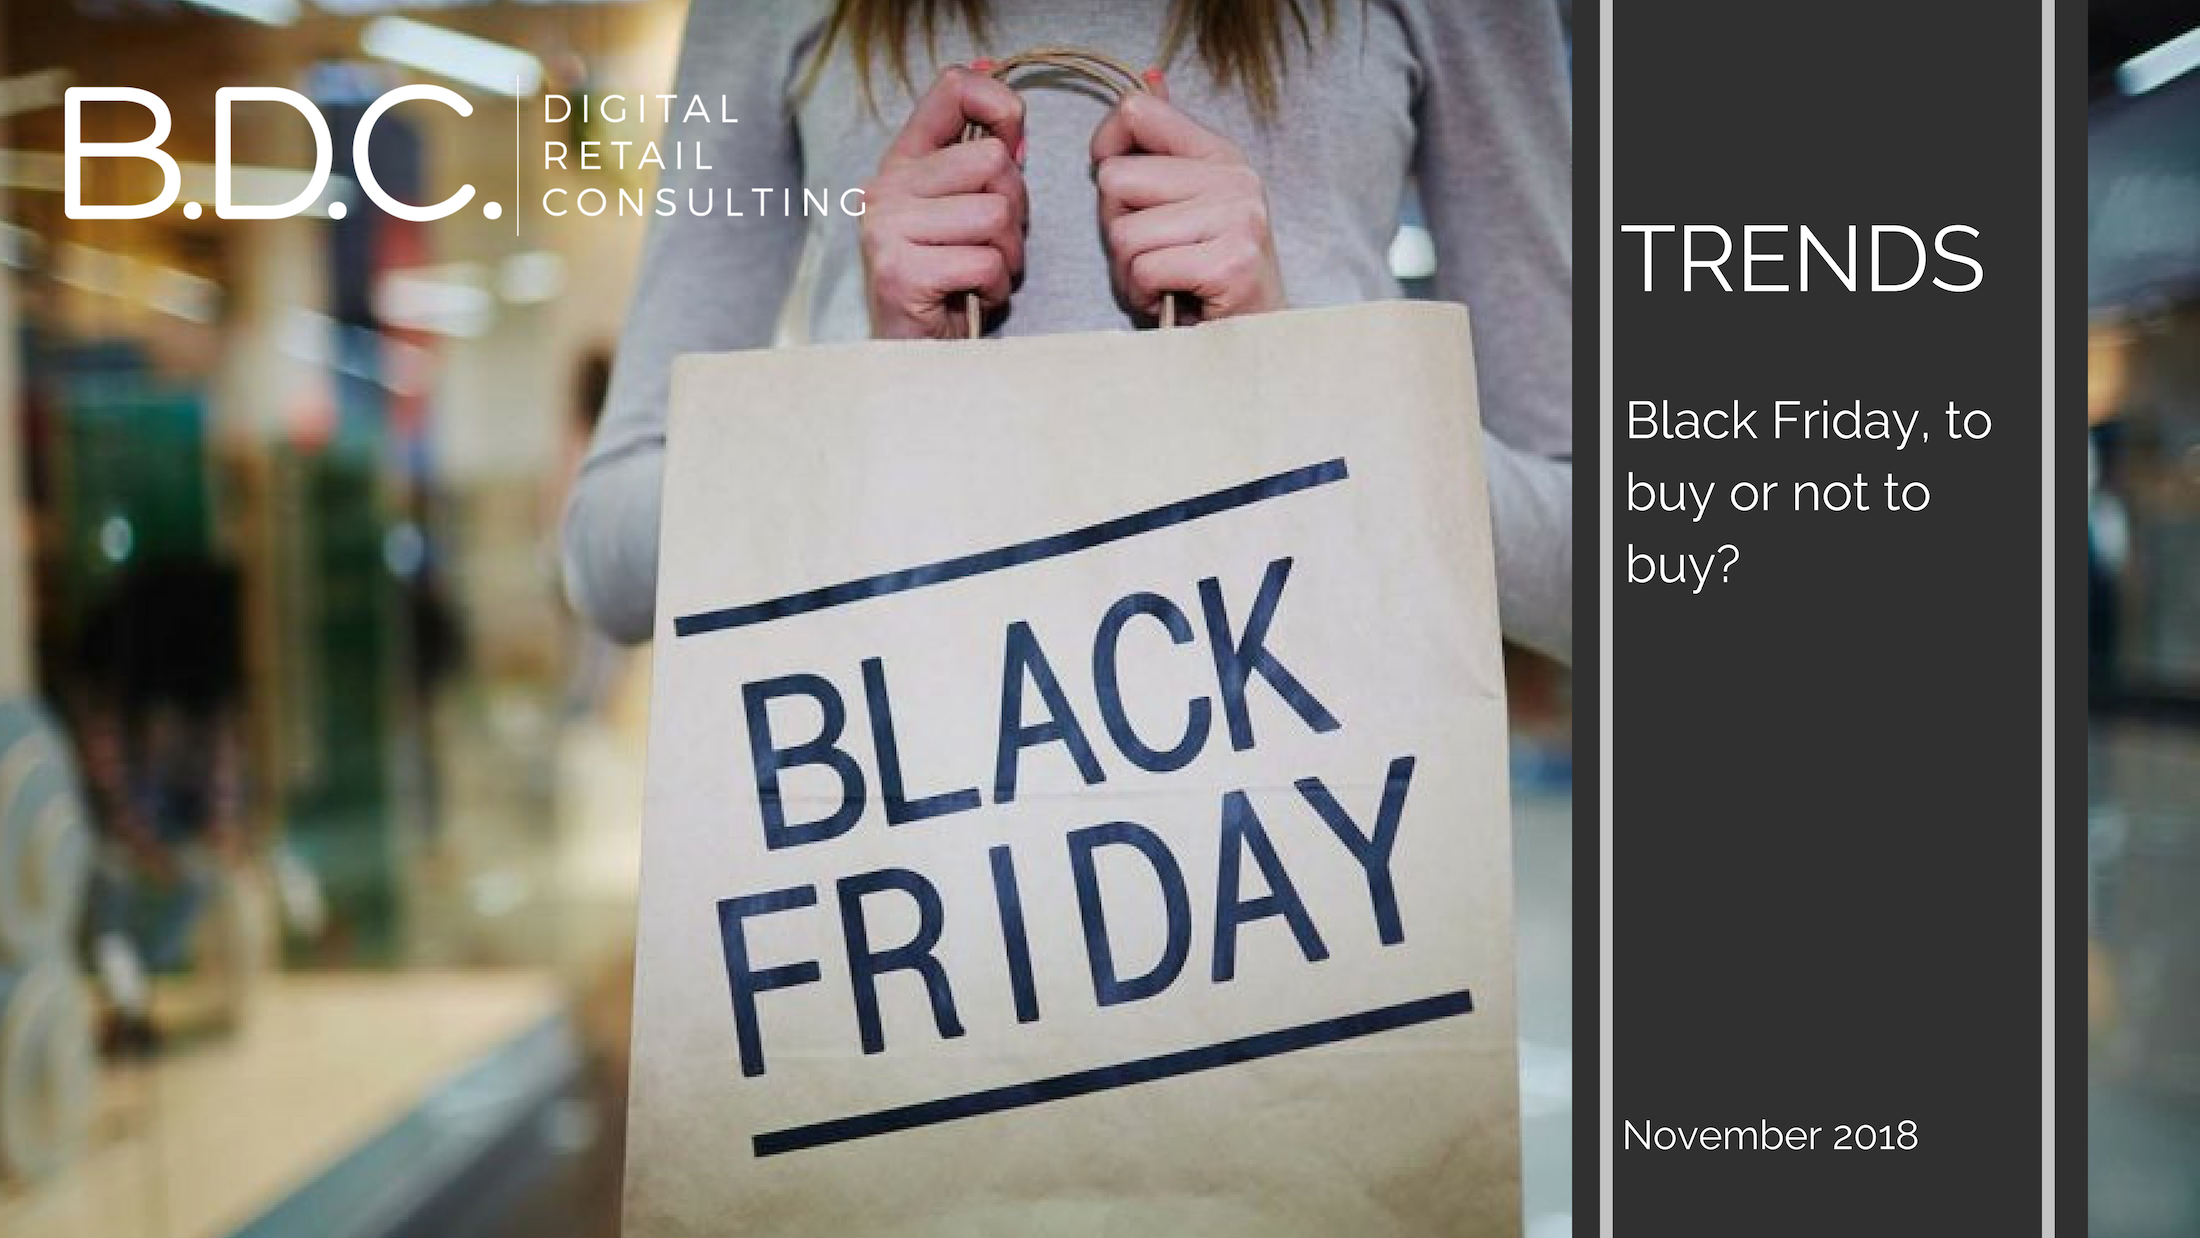 Trends News 18 - Black Friday, to buy or not to buy?